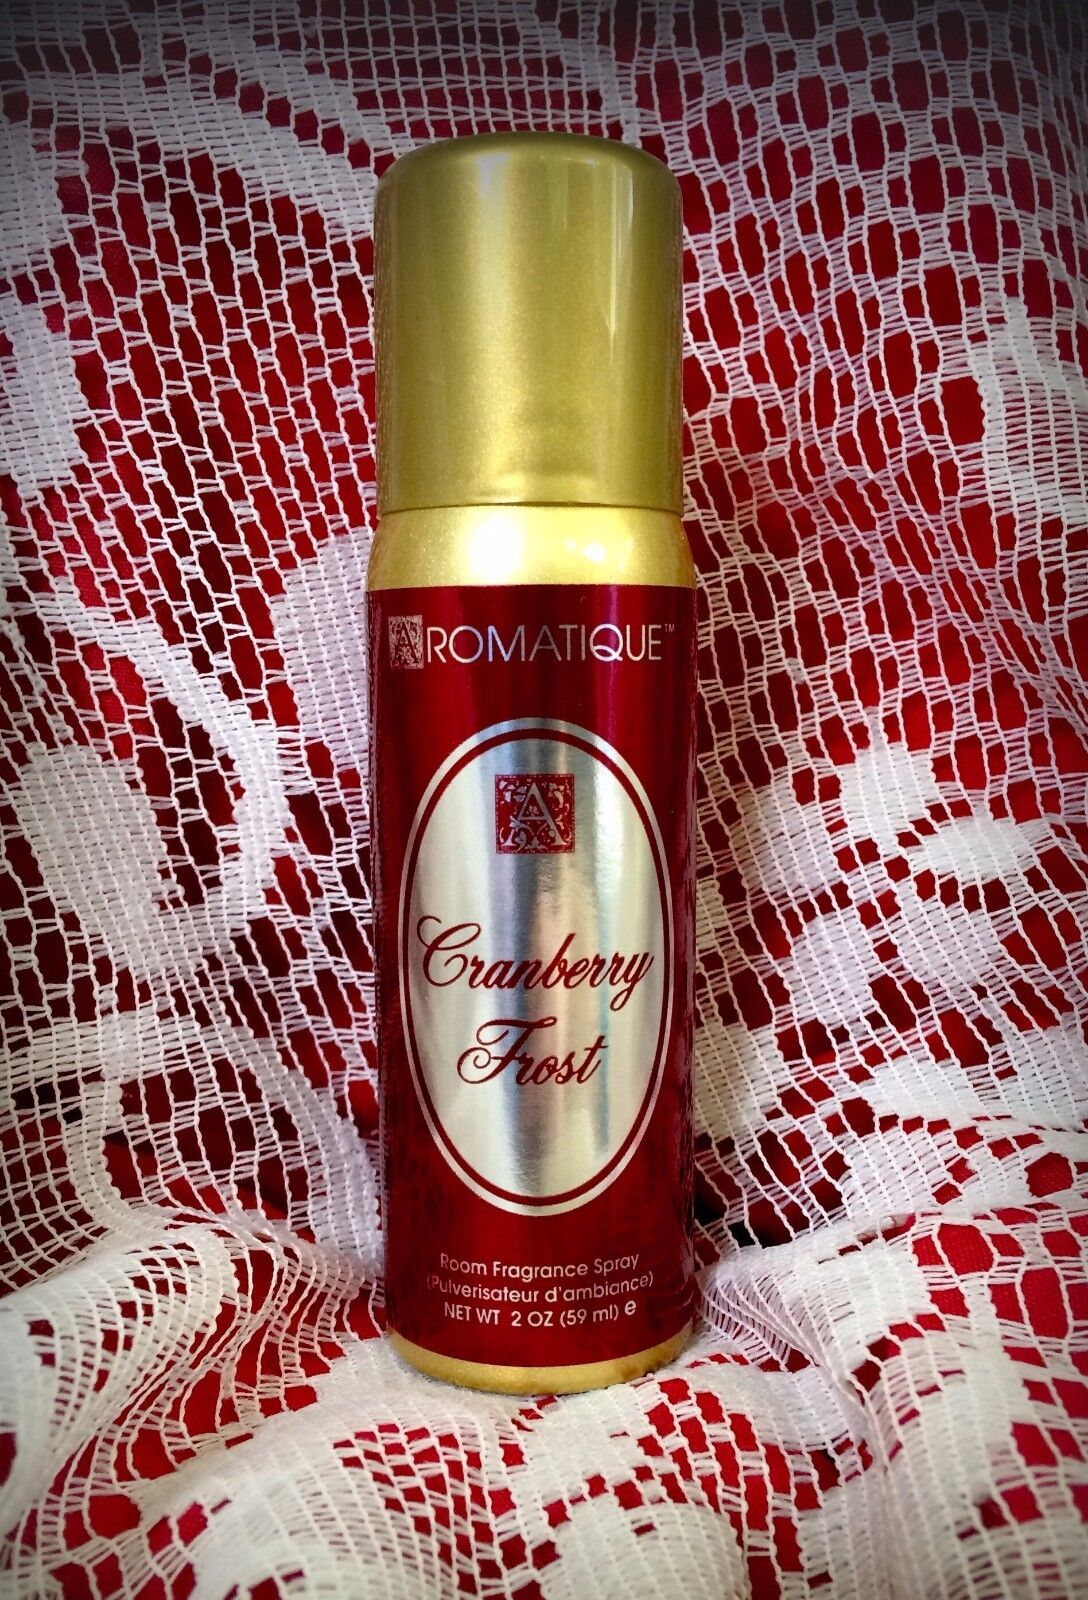 Aromatique Cranberry Frost 2 oz Room Fragrance Spray FREE SH